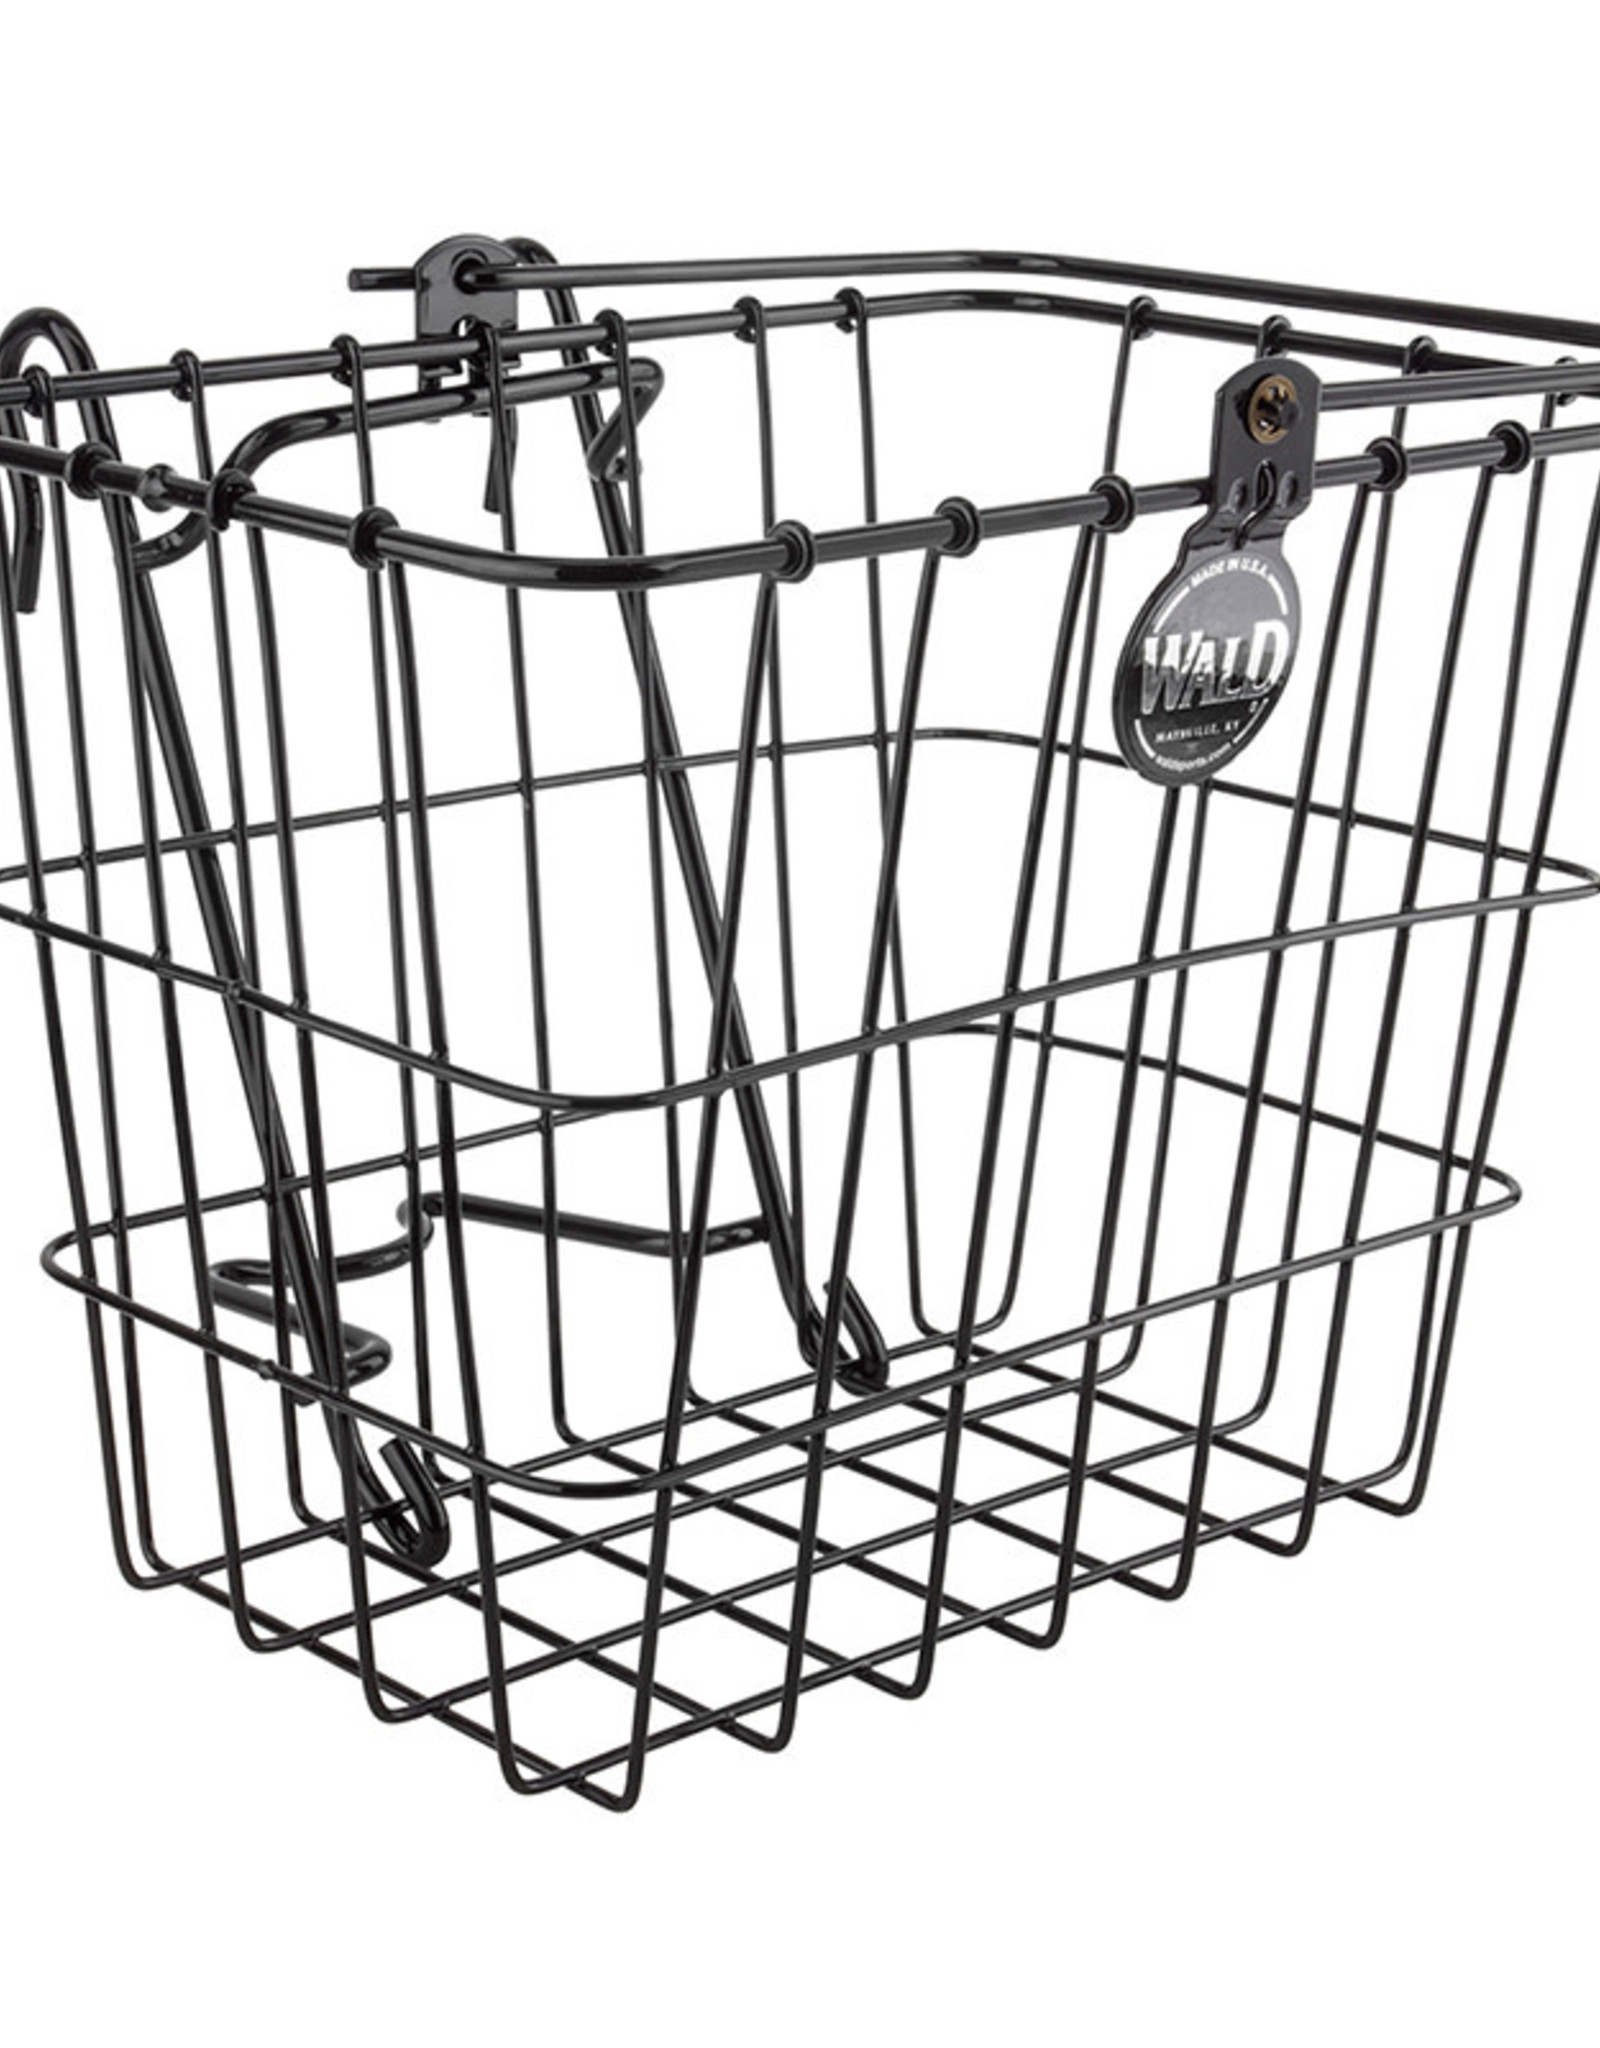 WALD PRODUCTS Wald 144 Lift-Off Front Basket,  14x9x9,  Black